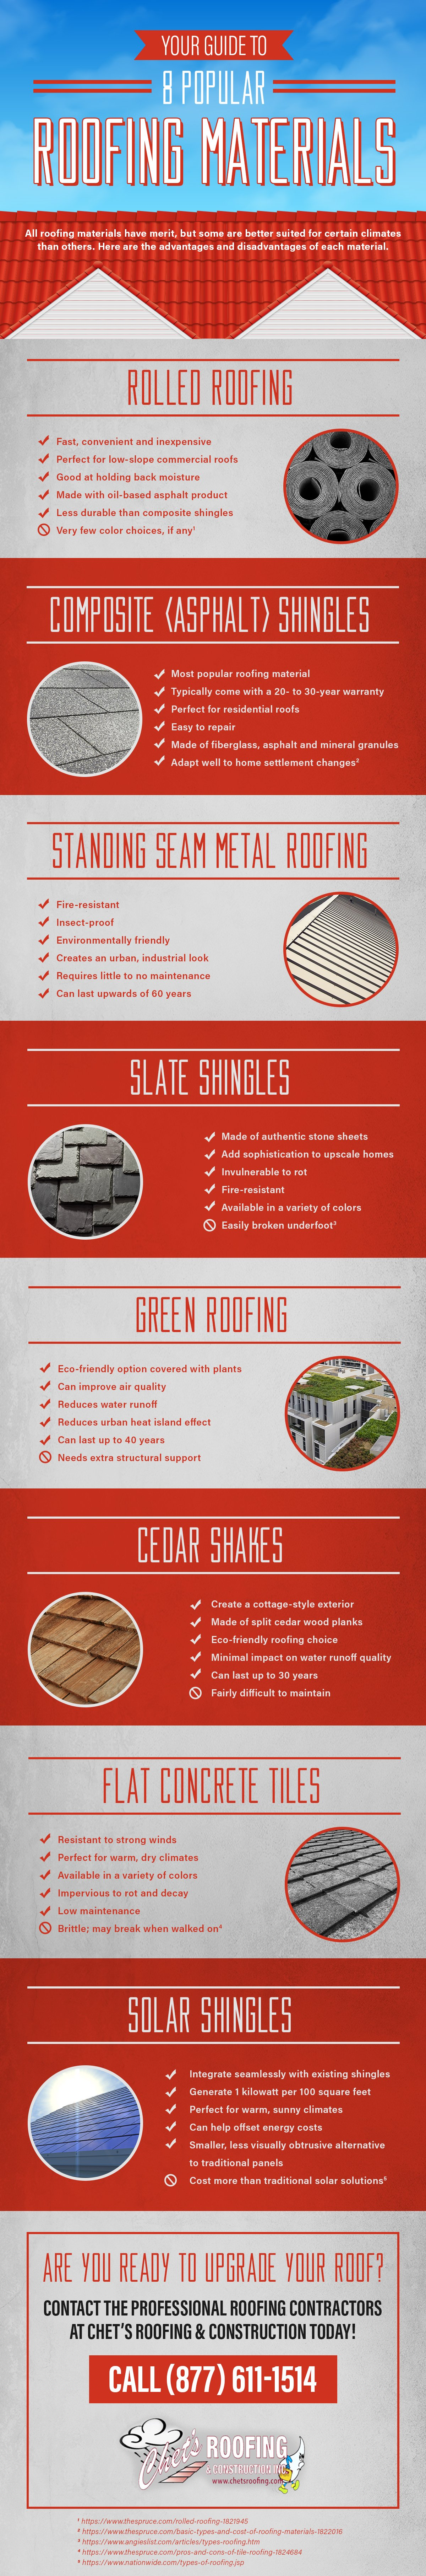 Your Guide to 8 Popular Roofing Materials